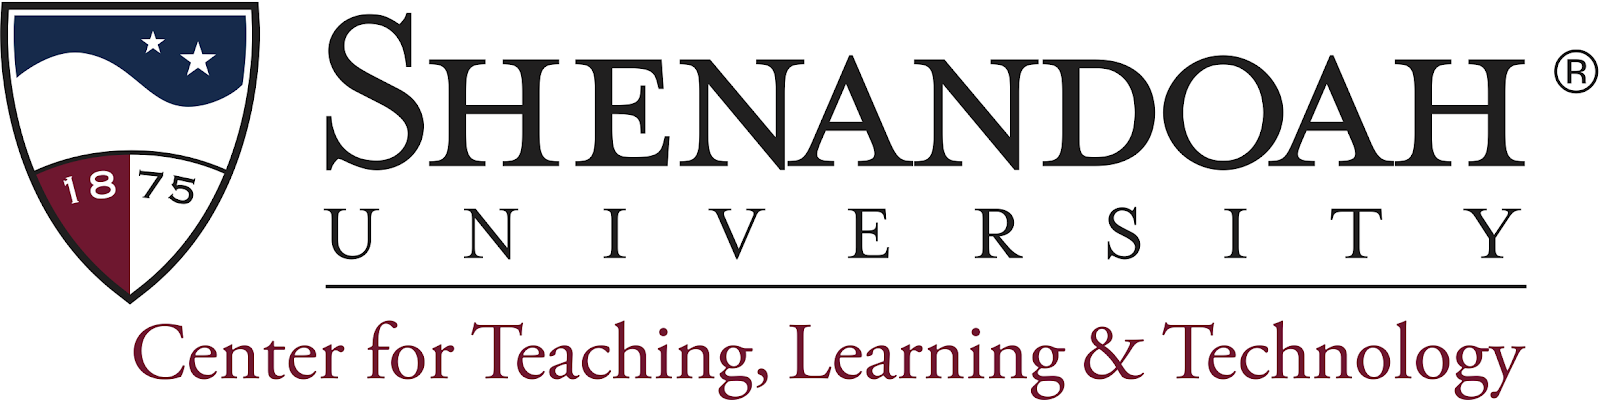 Shenandoah University Center for Teaching, Learning & Technology logo.